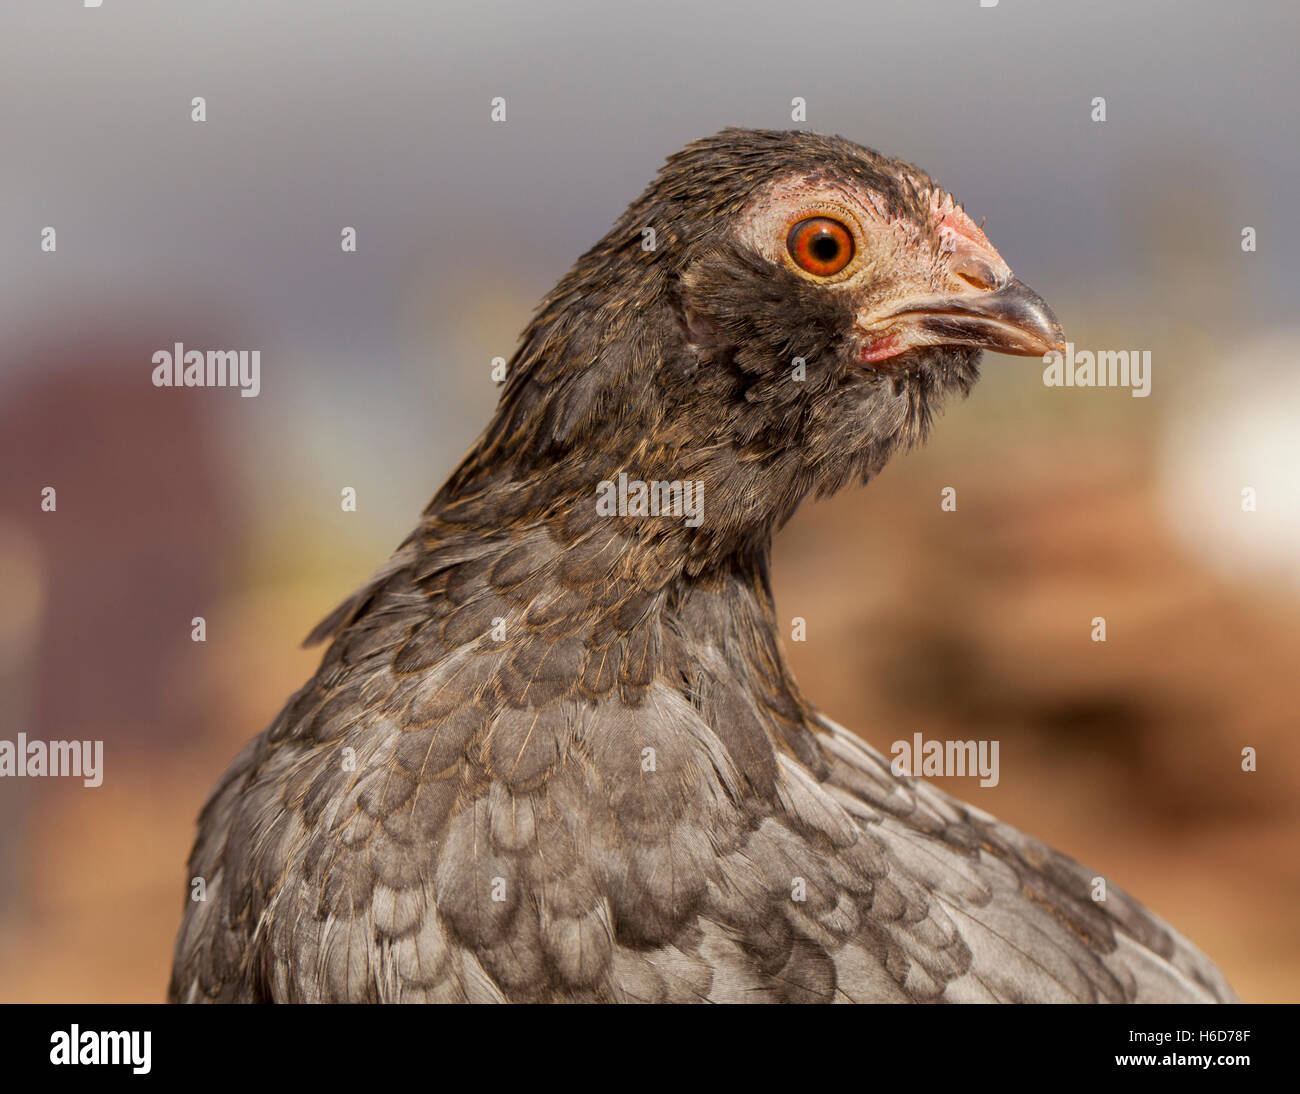 Chicken On The Farm - Stock Image